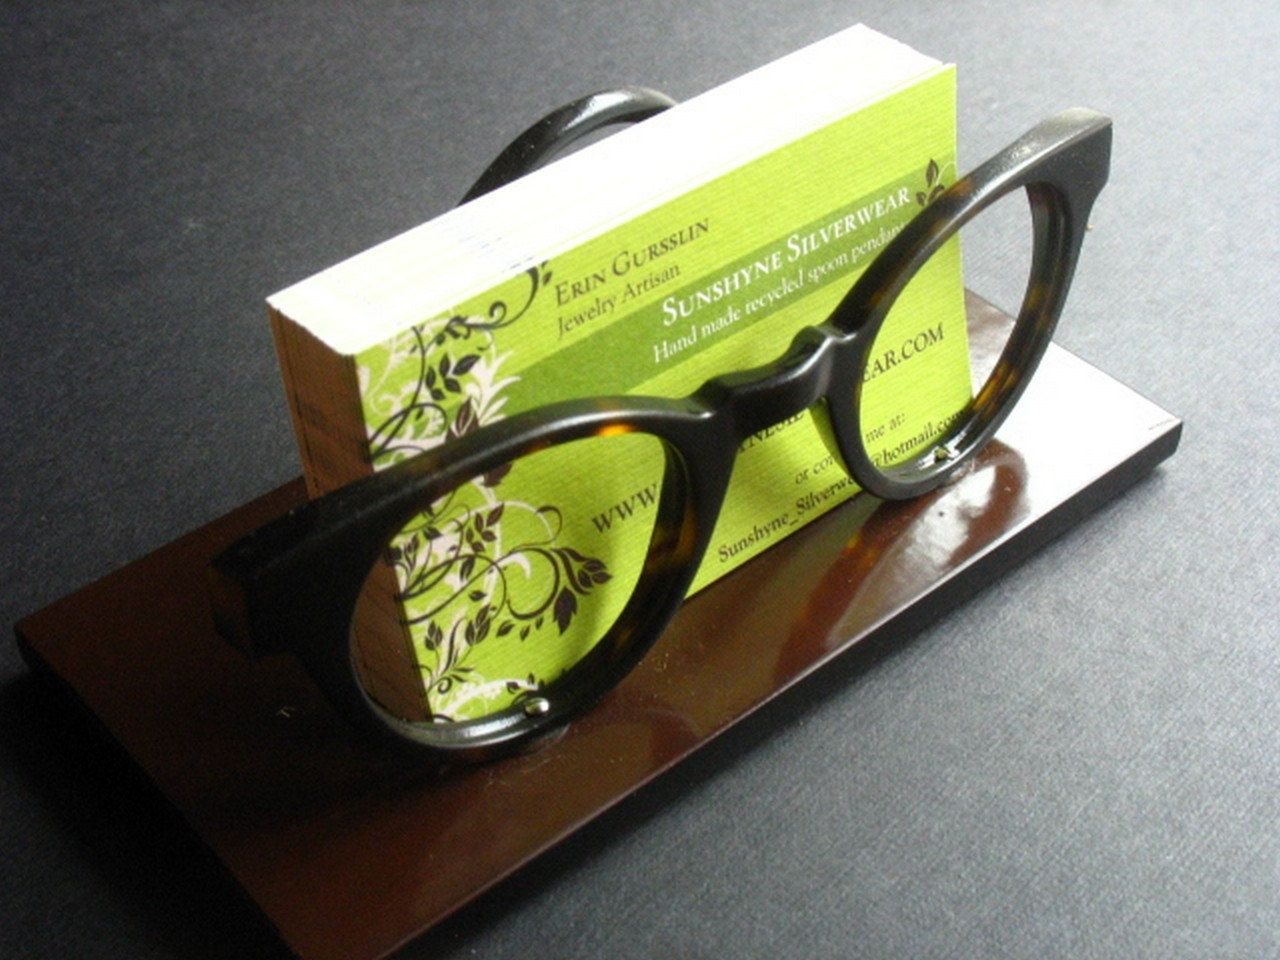 Business card holder made from vintage glasses frames, eco friendly ...